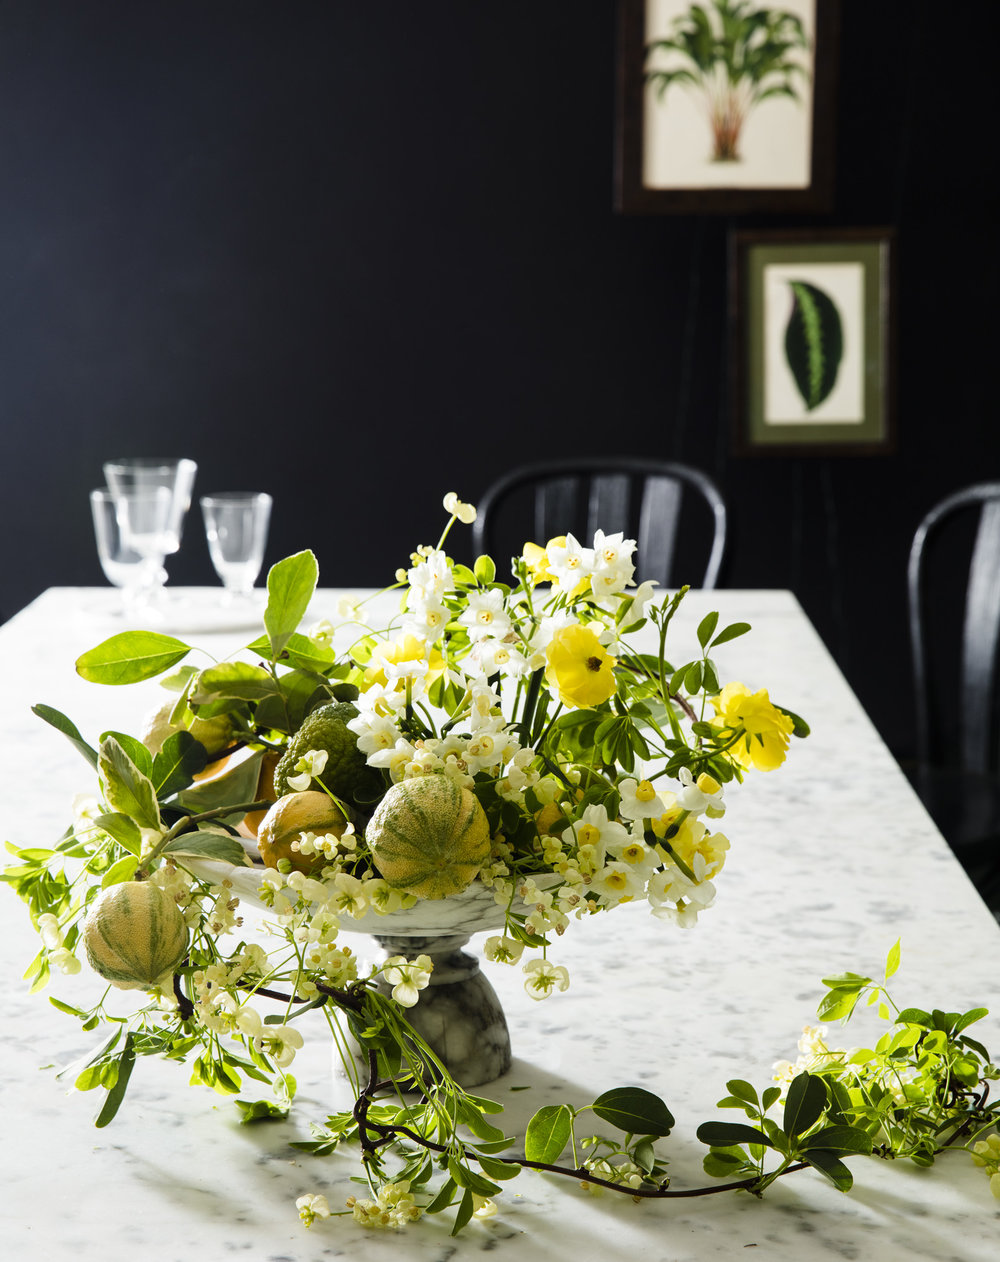 Ariella_SpringYellow_Botanical Arrangement.jpg